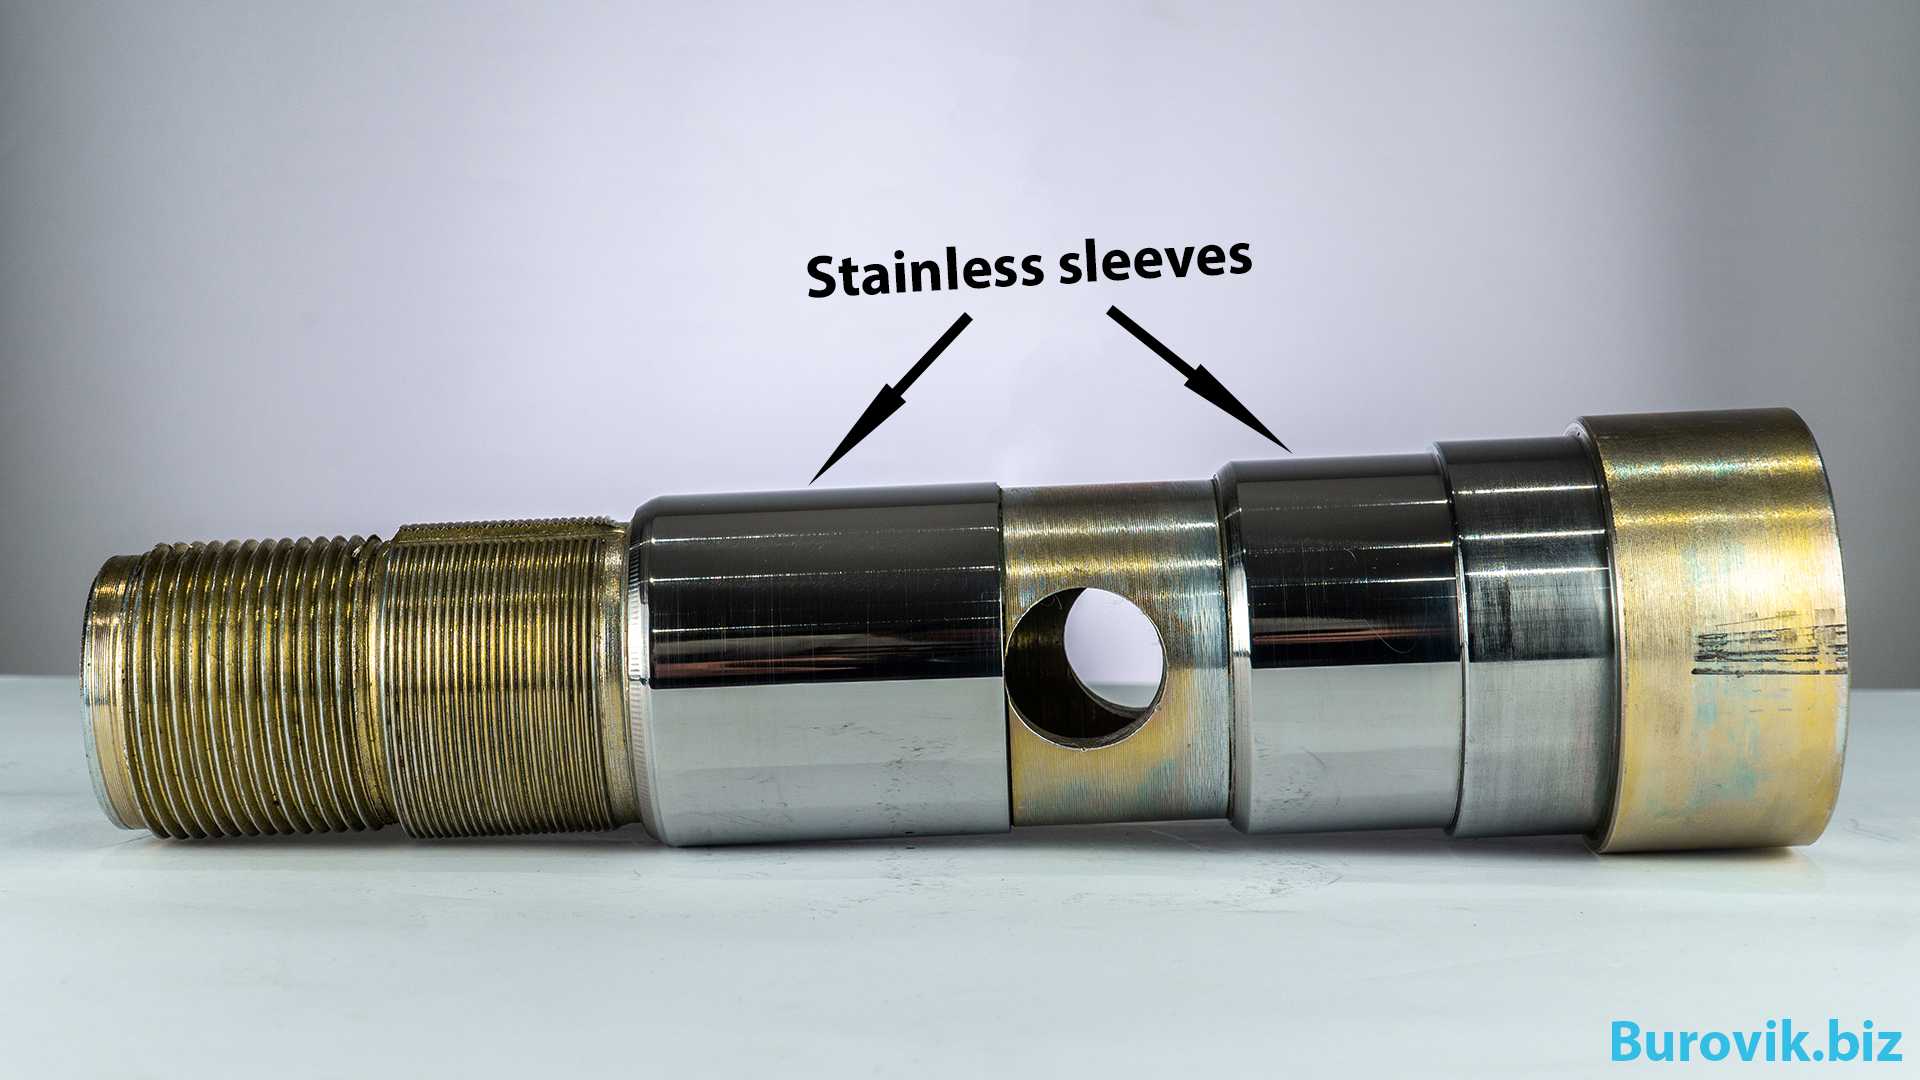 Shaft with stainless sleeves for water swivel